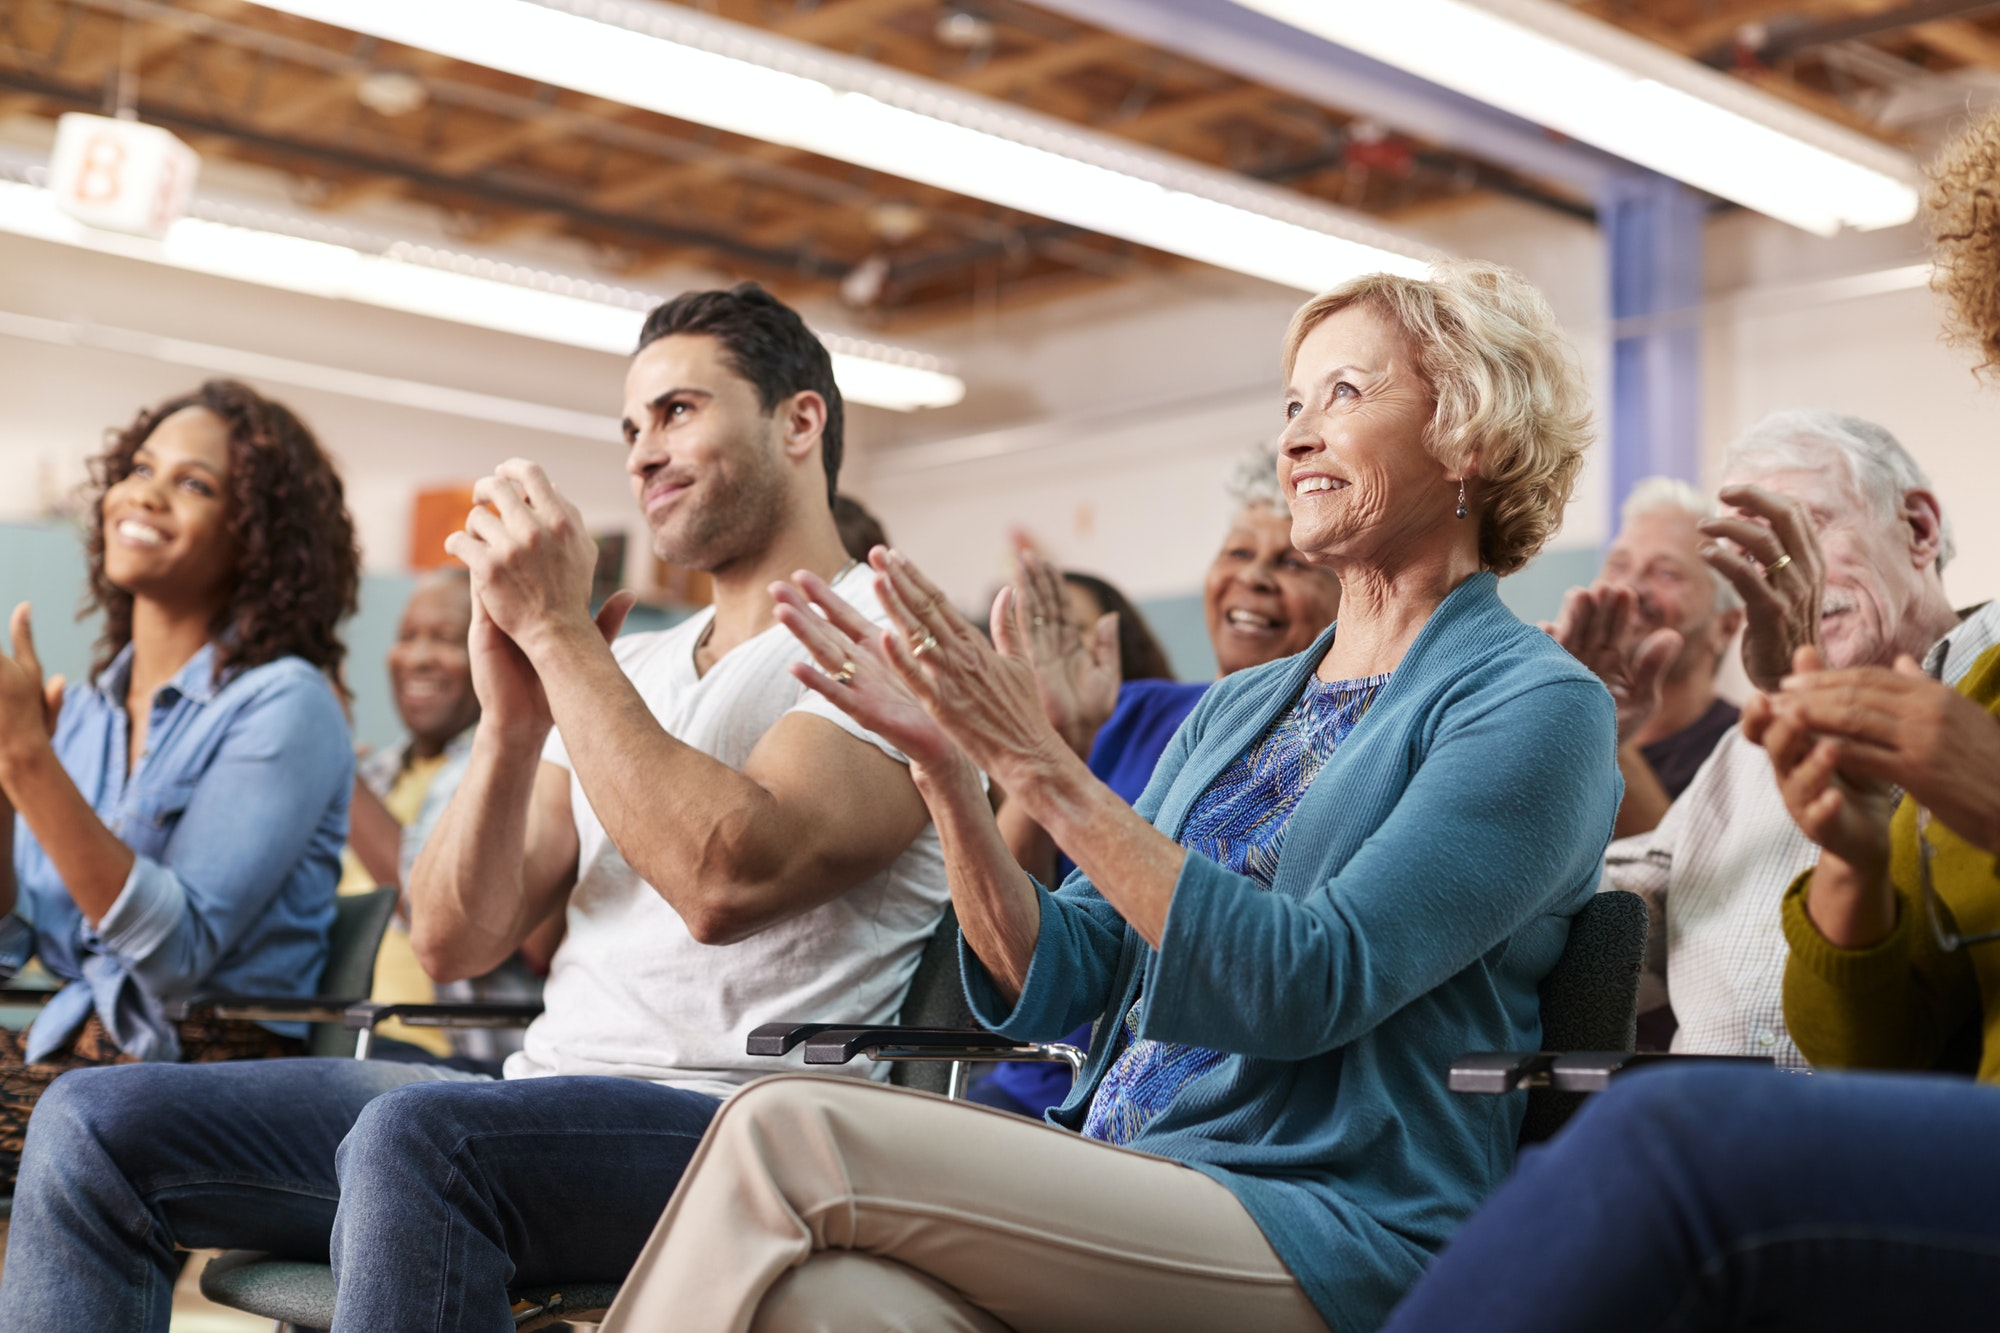 Group Attending Neighborhood Meeting In Community Center Clapping